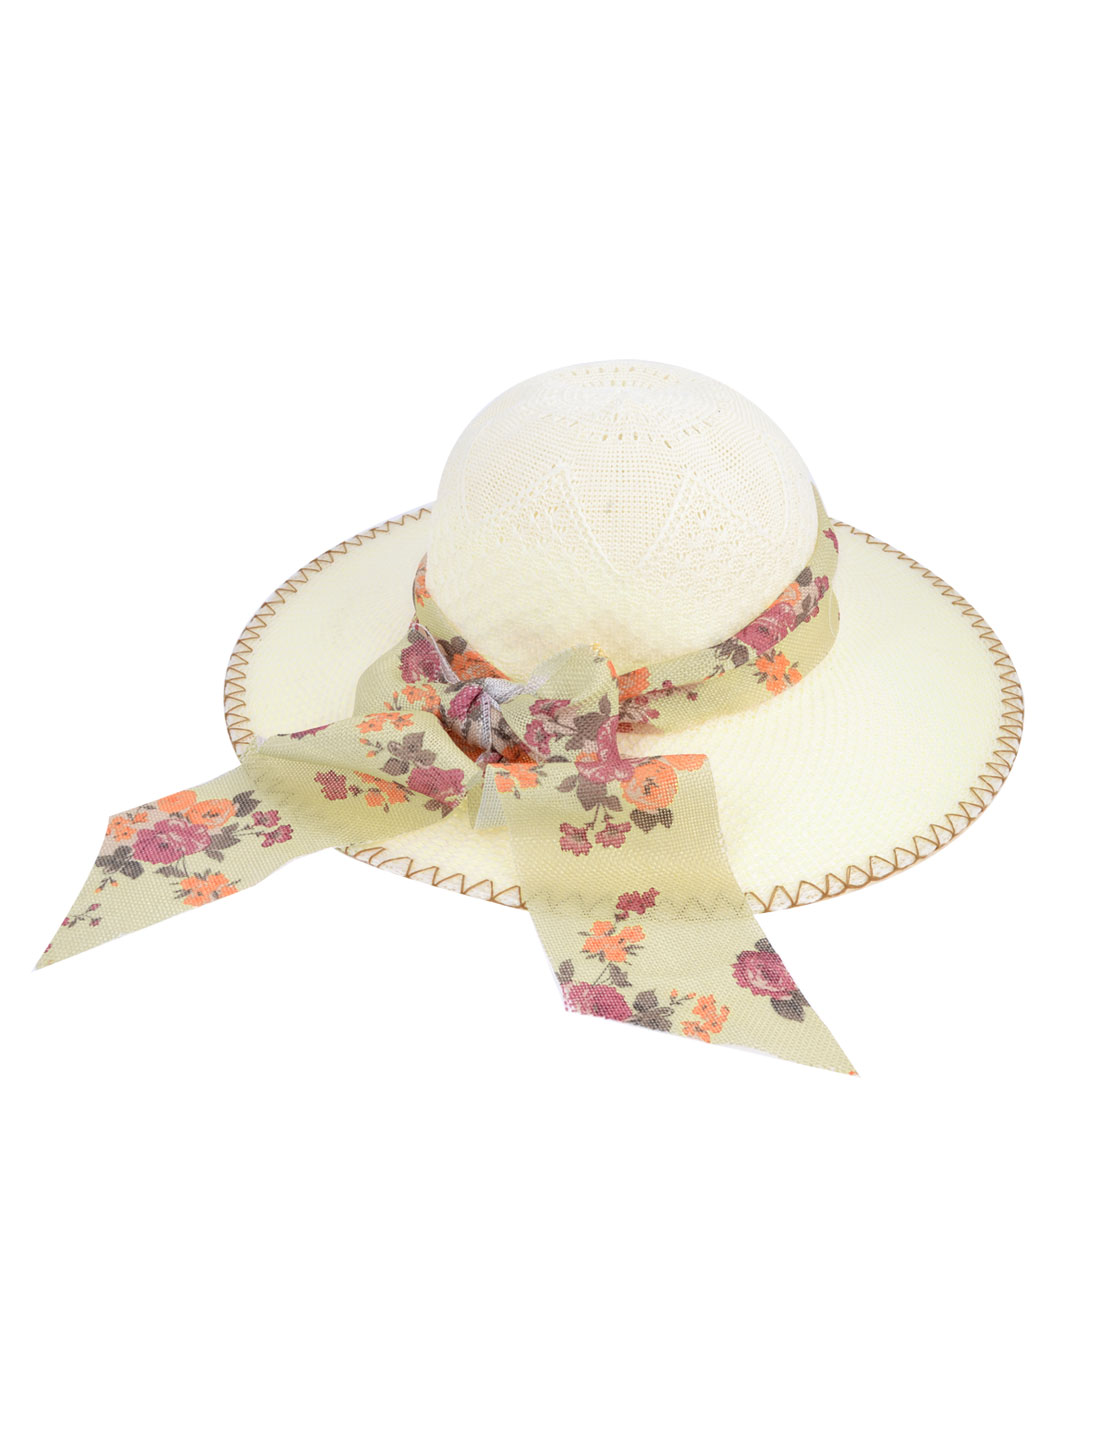 10cm Wide Brim Flower Print Bowtie Decor Summer Beach Hat Cap Ivory for Lady